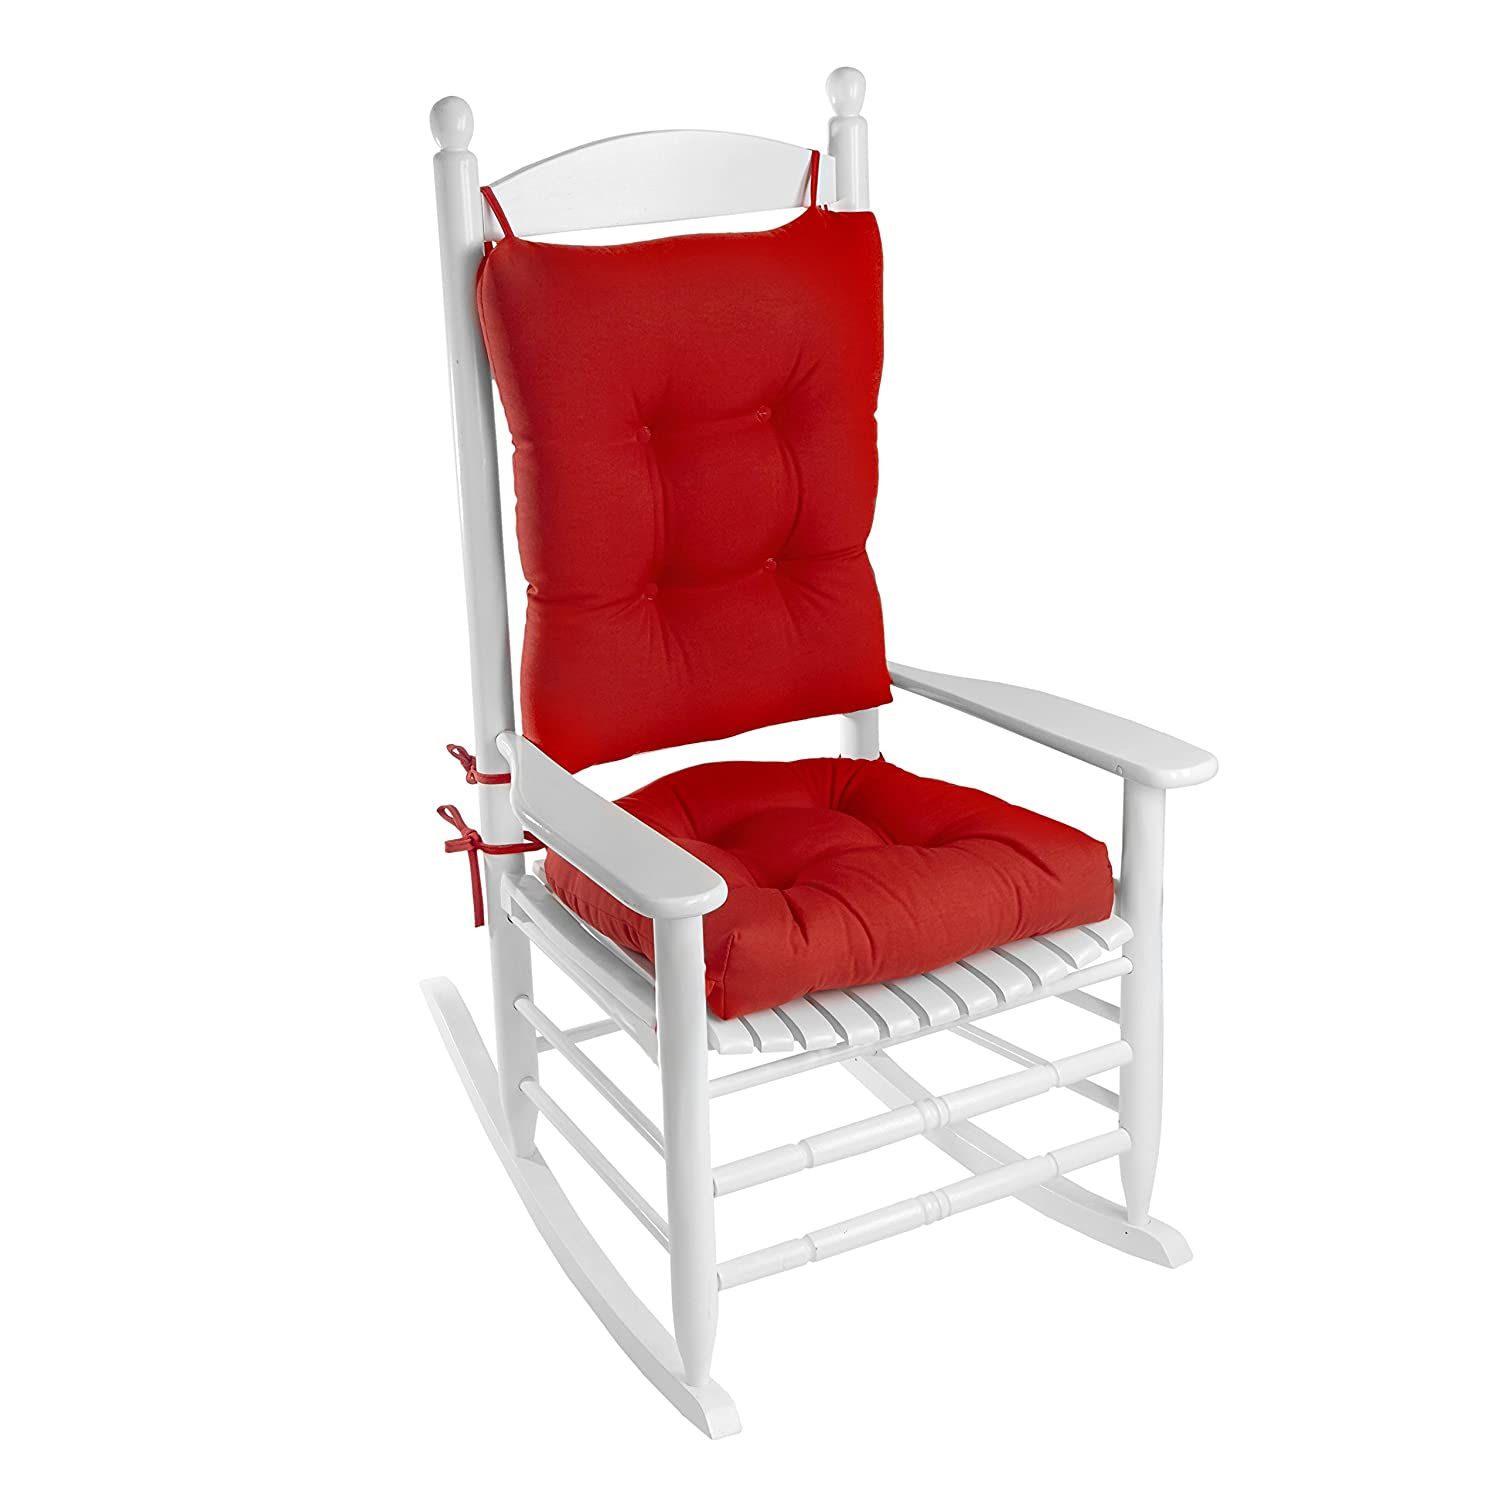 Remarkable Klear Vu Indoor Outdoor Rocking Chair Pad Set 20 5 X 19 X 3 Inches Red Machost Co Dining Chair Design Ideas Machostcouk